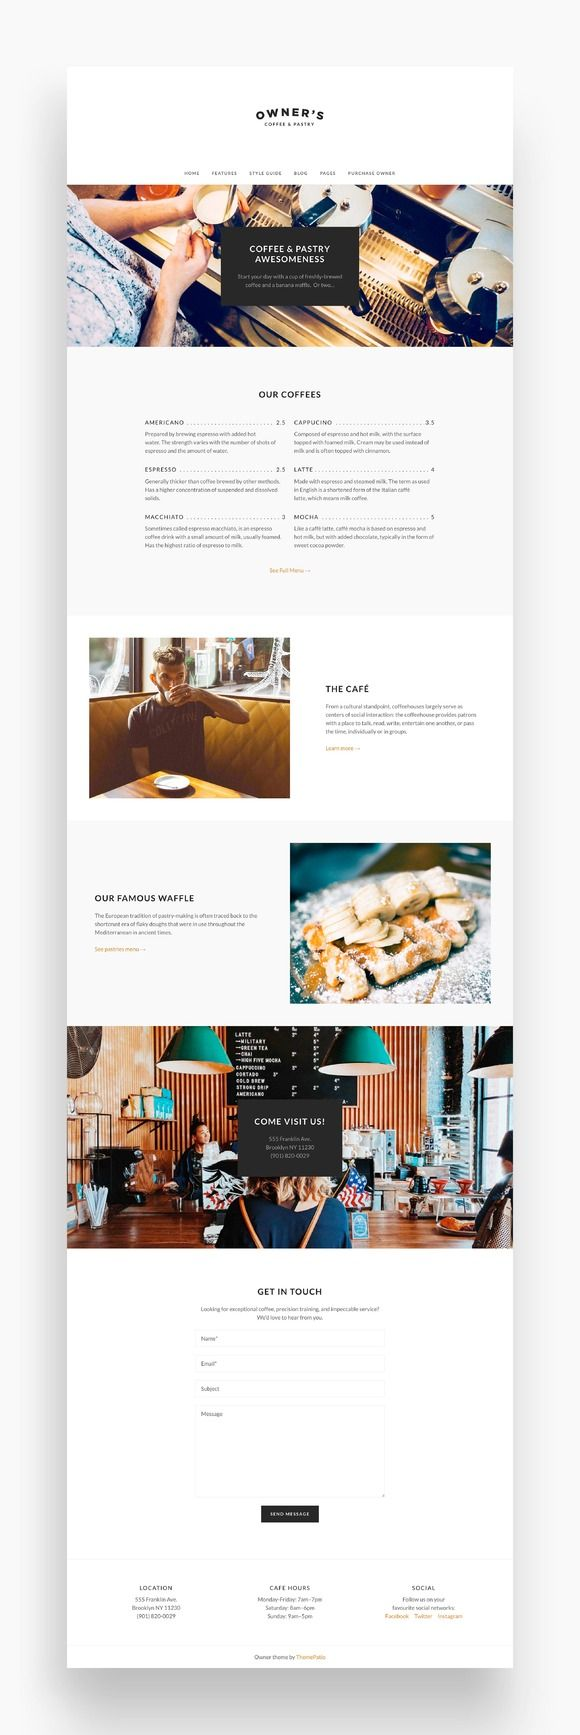 Owner – Business WordPress Theme by ThemePatio on @creativemarket